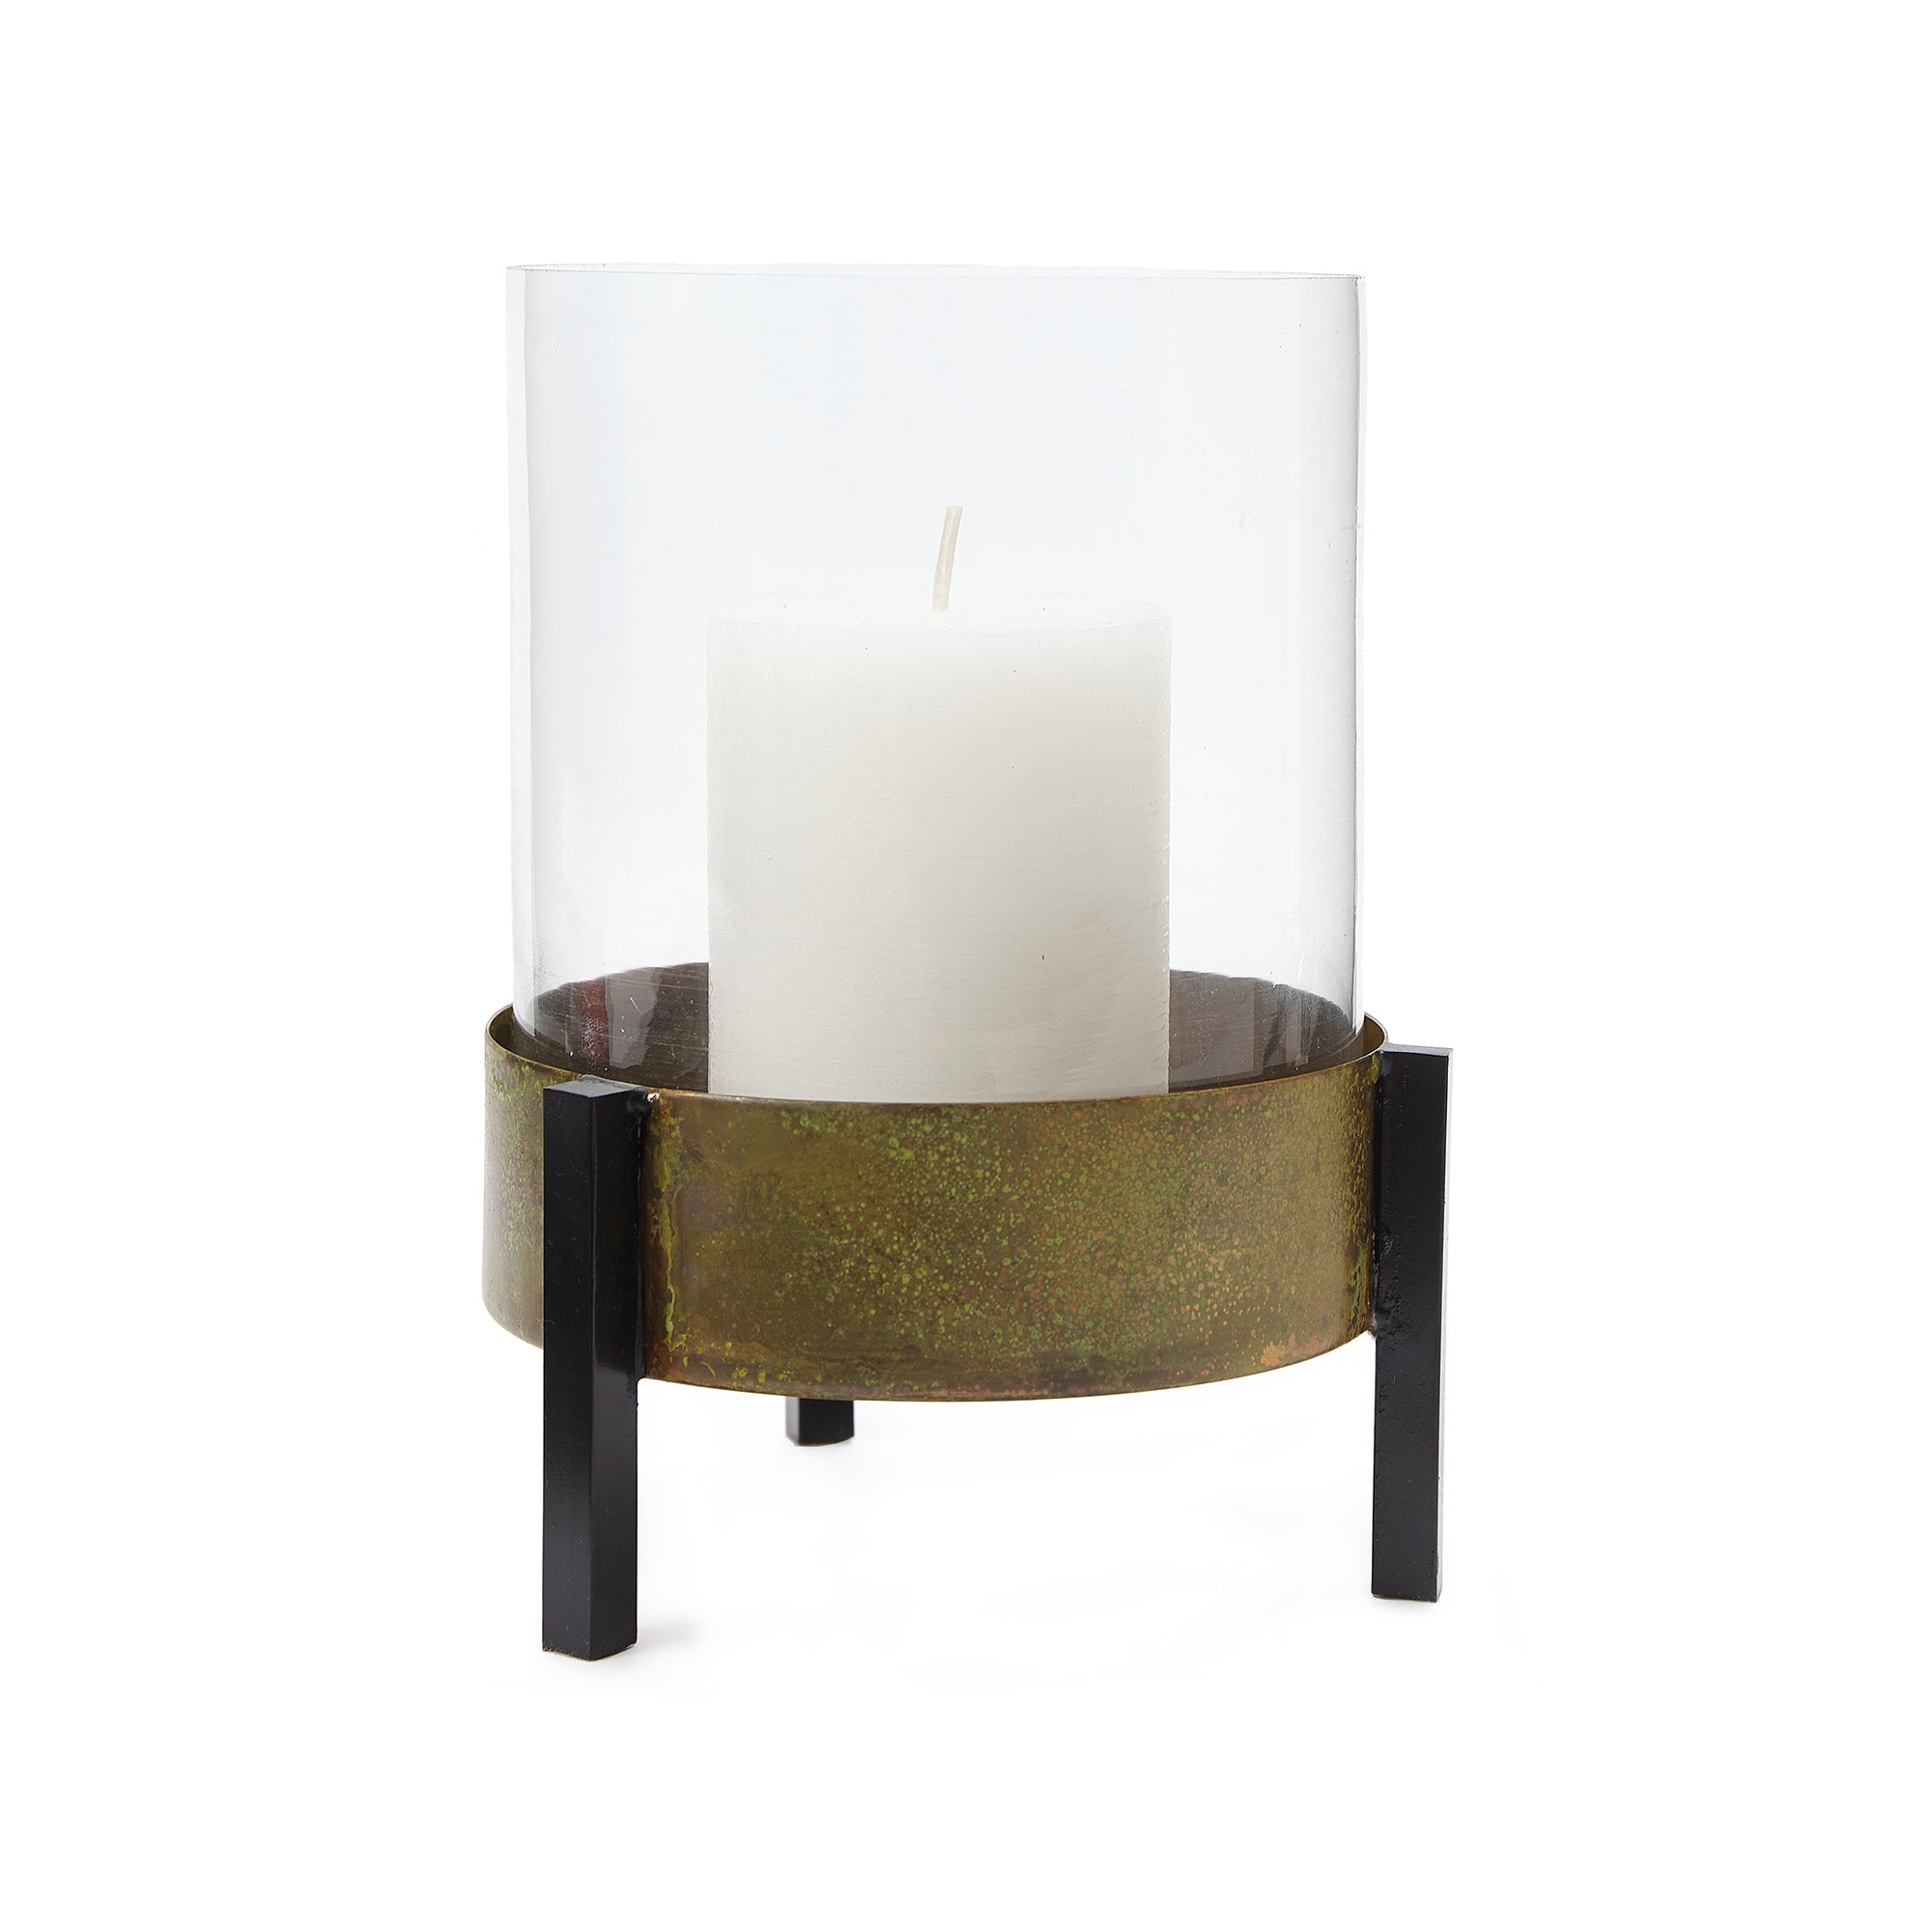 Ozar Windlight Candle Holder [Brass/Mustard/Black]